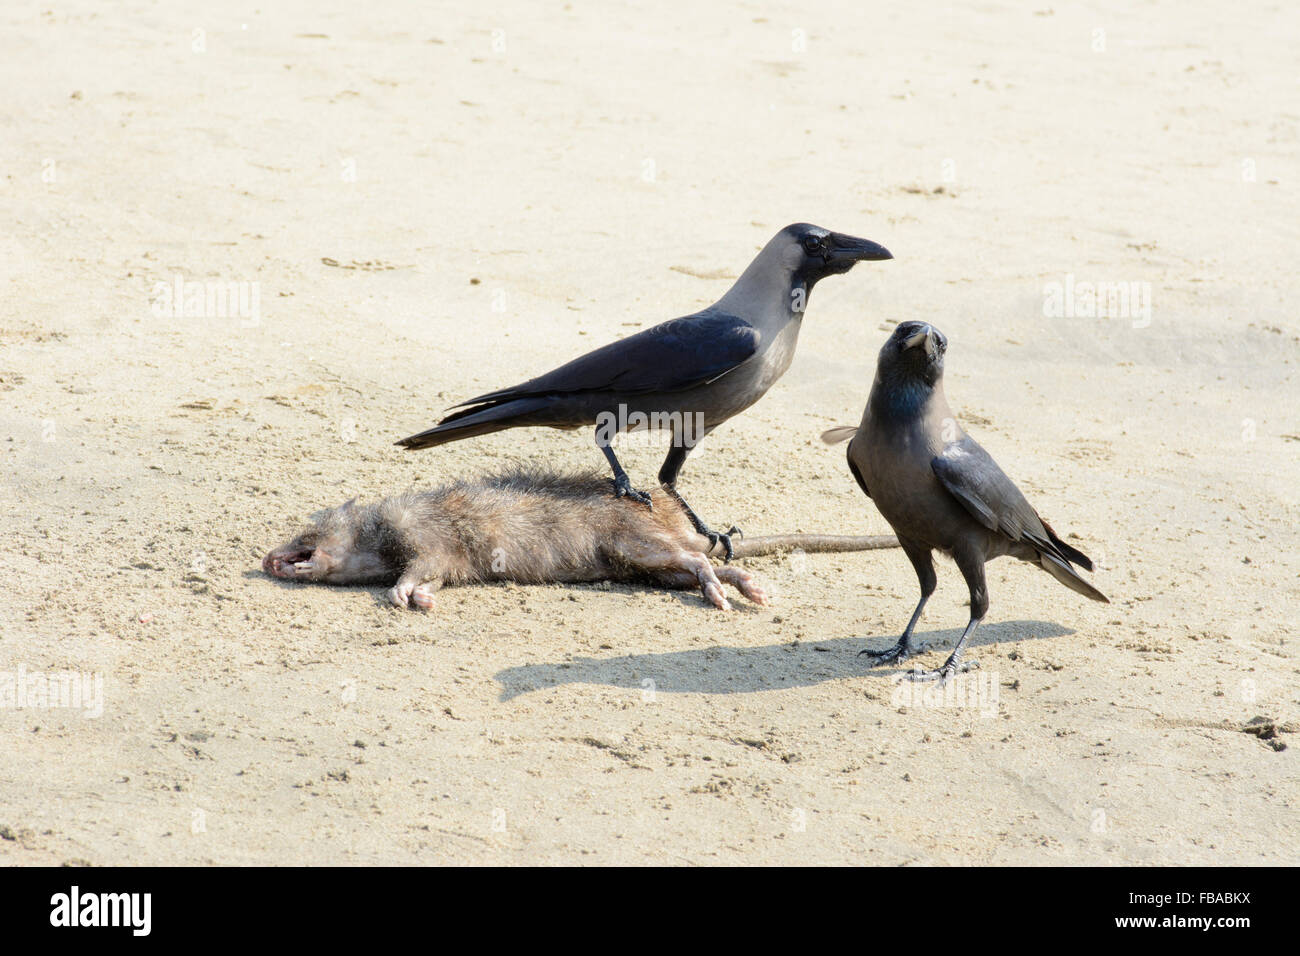 Two Indian House Crows (Corvus splendens) discover a dead rat on Arambol beach, North Goa, India - Stock Image